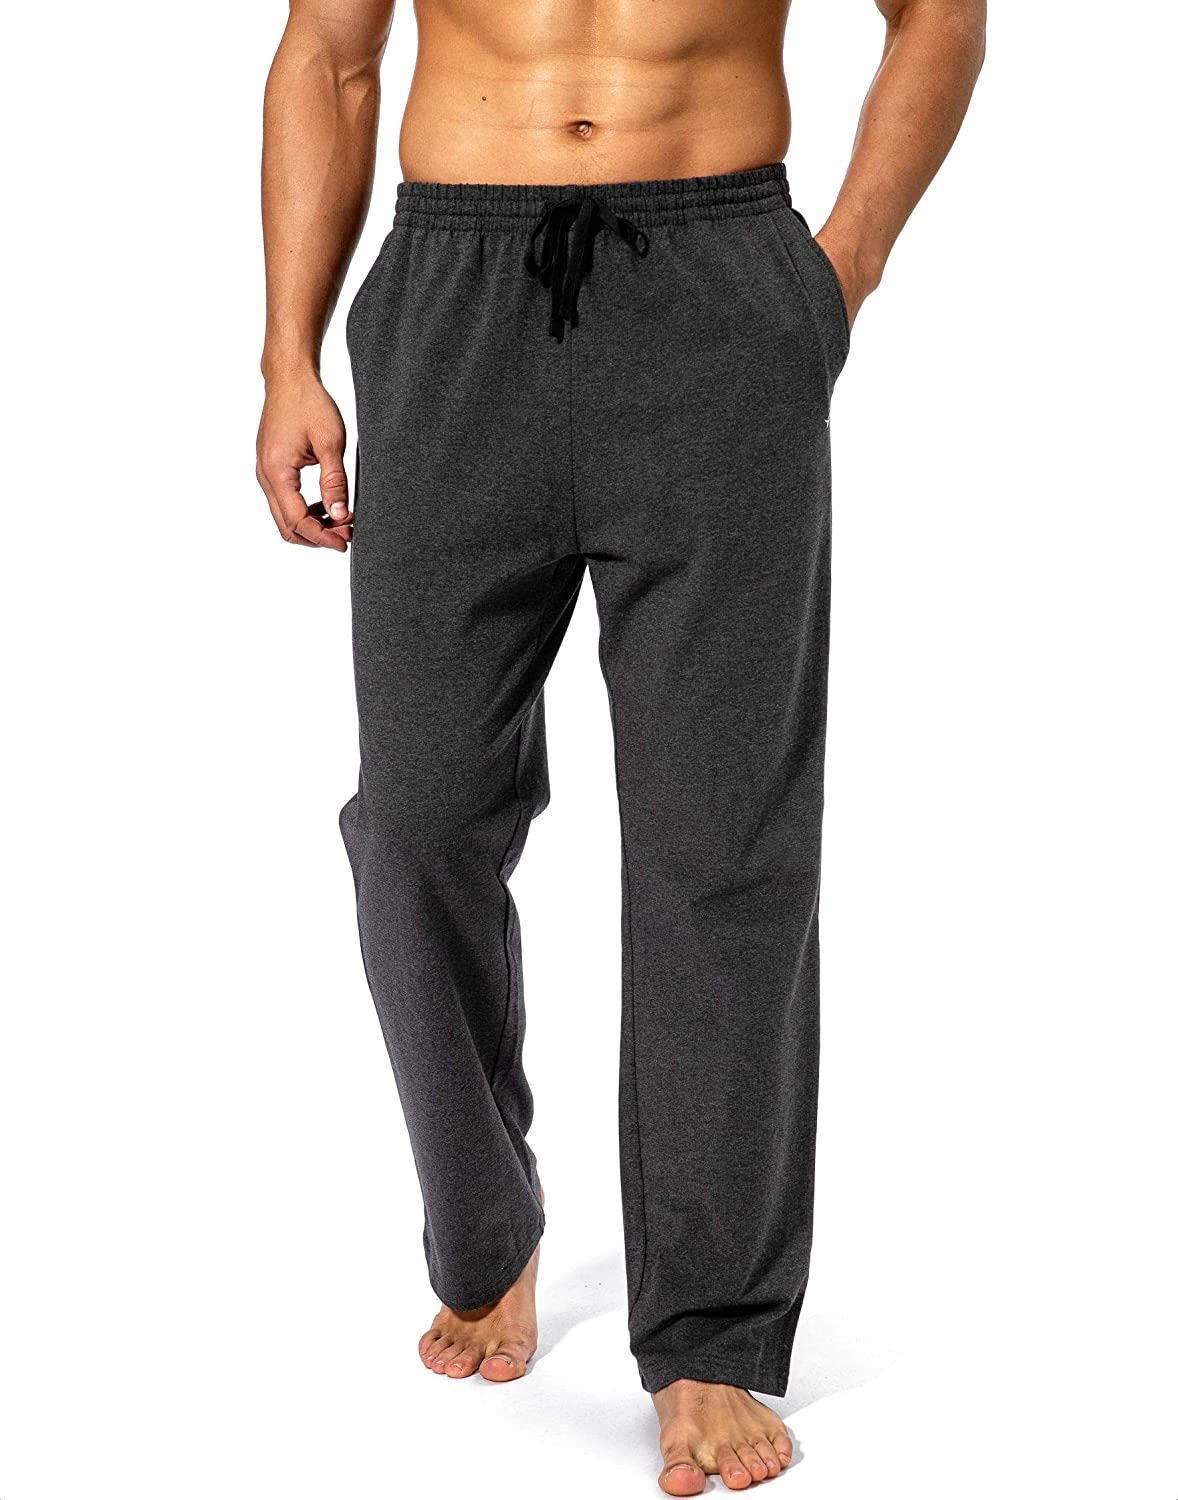 Pudolla Men's Cotton Yoga Sweatpants Athletic Lounge Pants Open Bottom Casual Jersey Pants for Men with Pockets